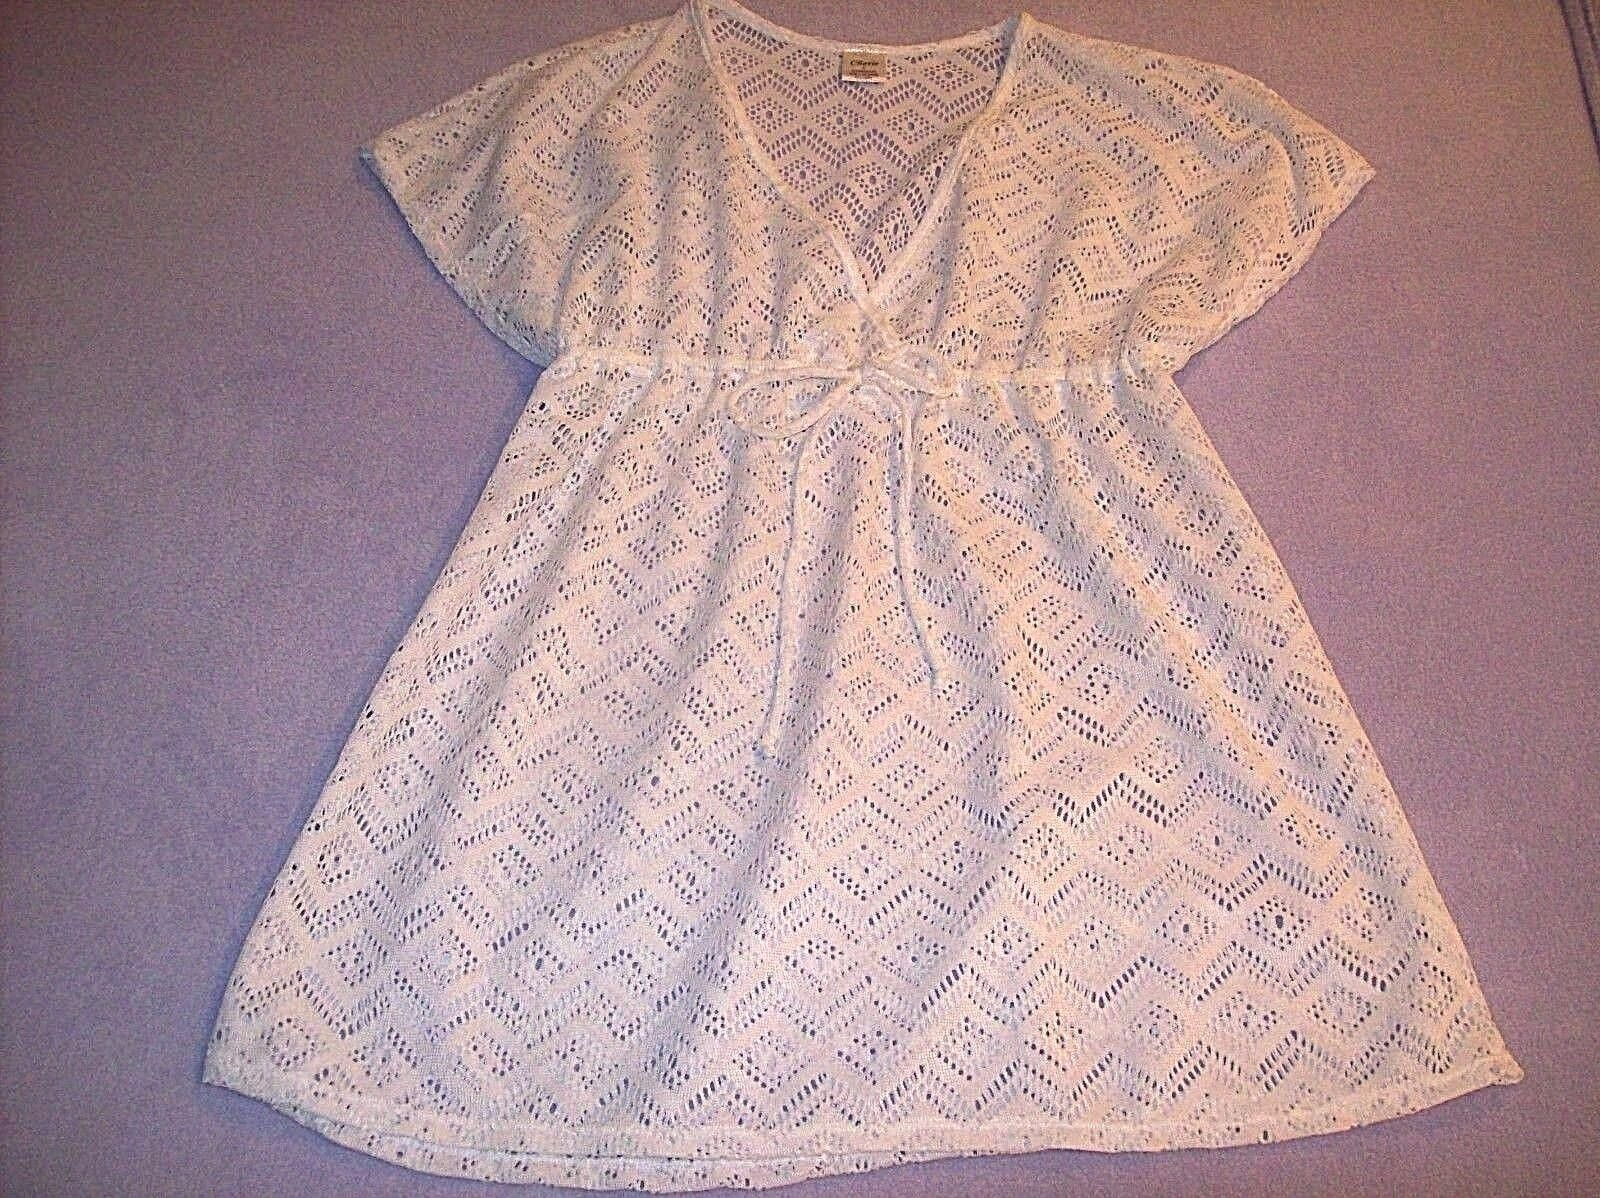 NWOT STUNNING WHITE SEMI SHEER  BEACH COVERUP BY CHERIE SIZE L 100% POLYESTER